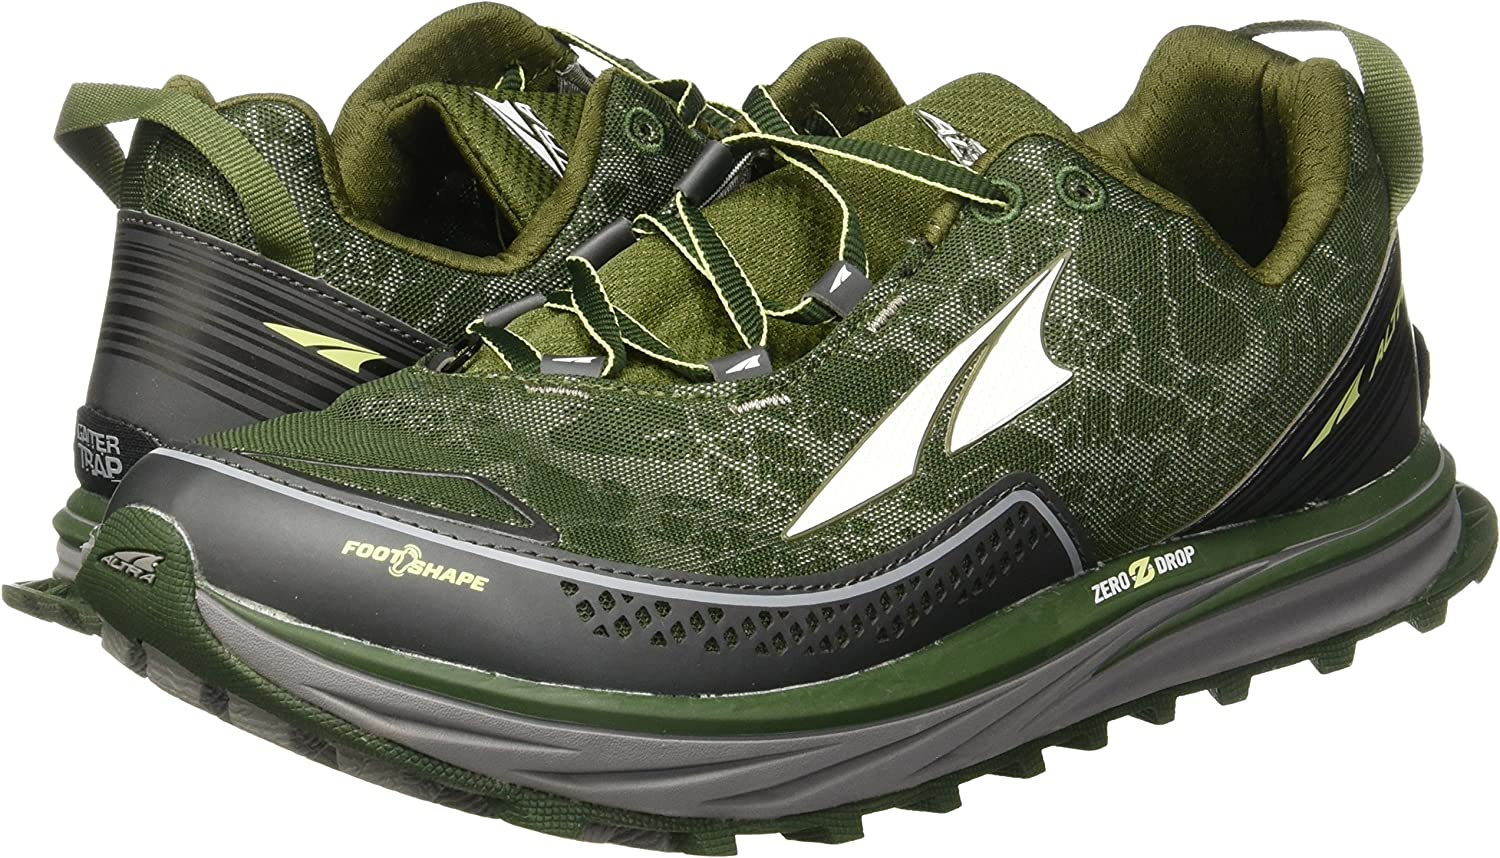 Altra Timp Trail Zapatillas de trail running: Amazon.es: Zapatos y ...